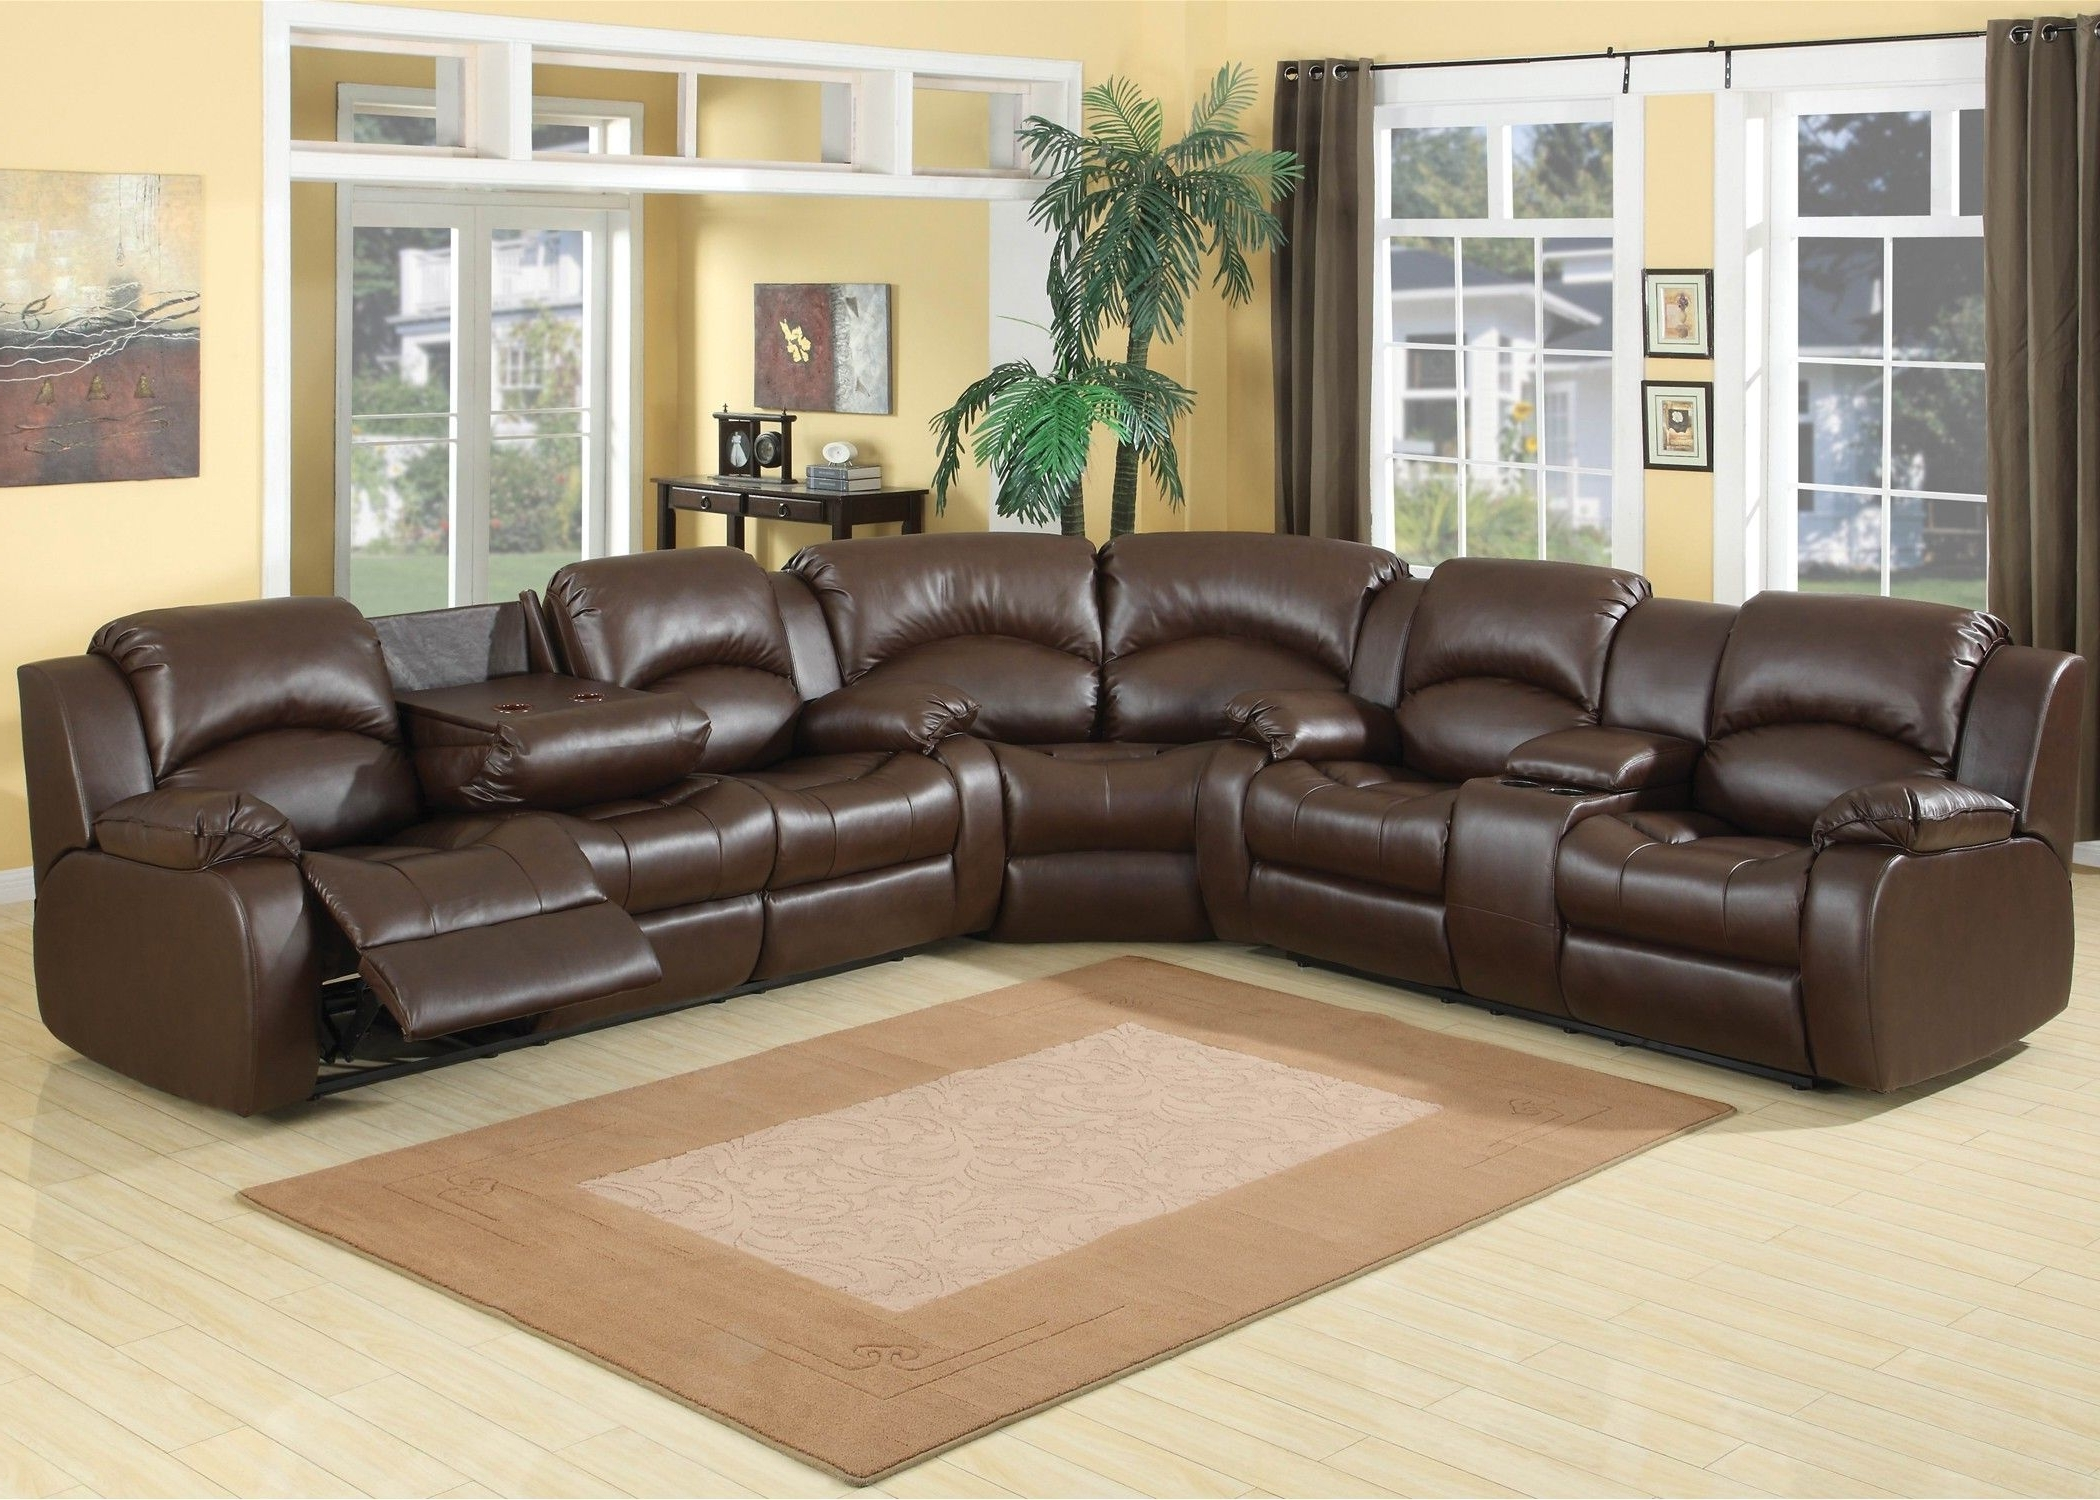 Fashionable Amazing Leather Reclining Sectional Sofa Design: Leather Reclining Within Curved Sectional Sofas With Recliner (View 10 of 20)